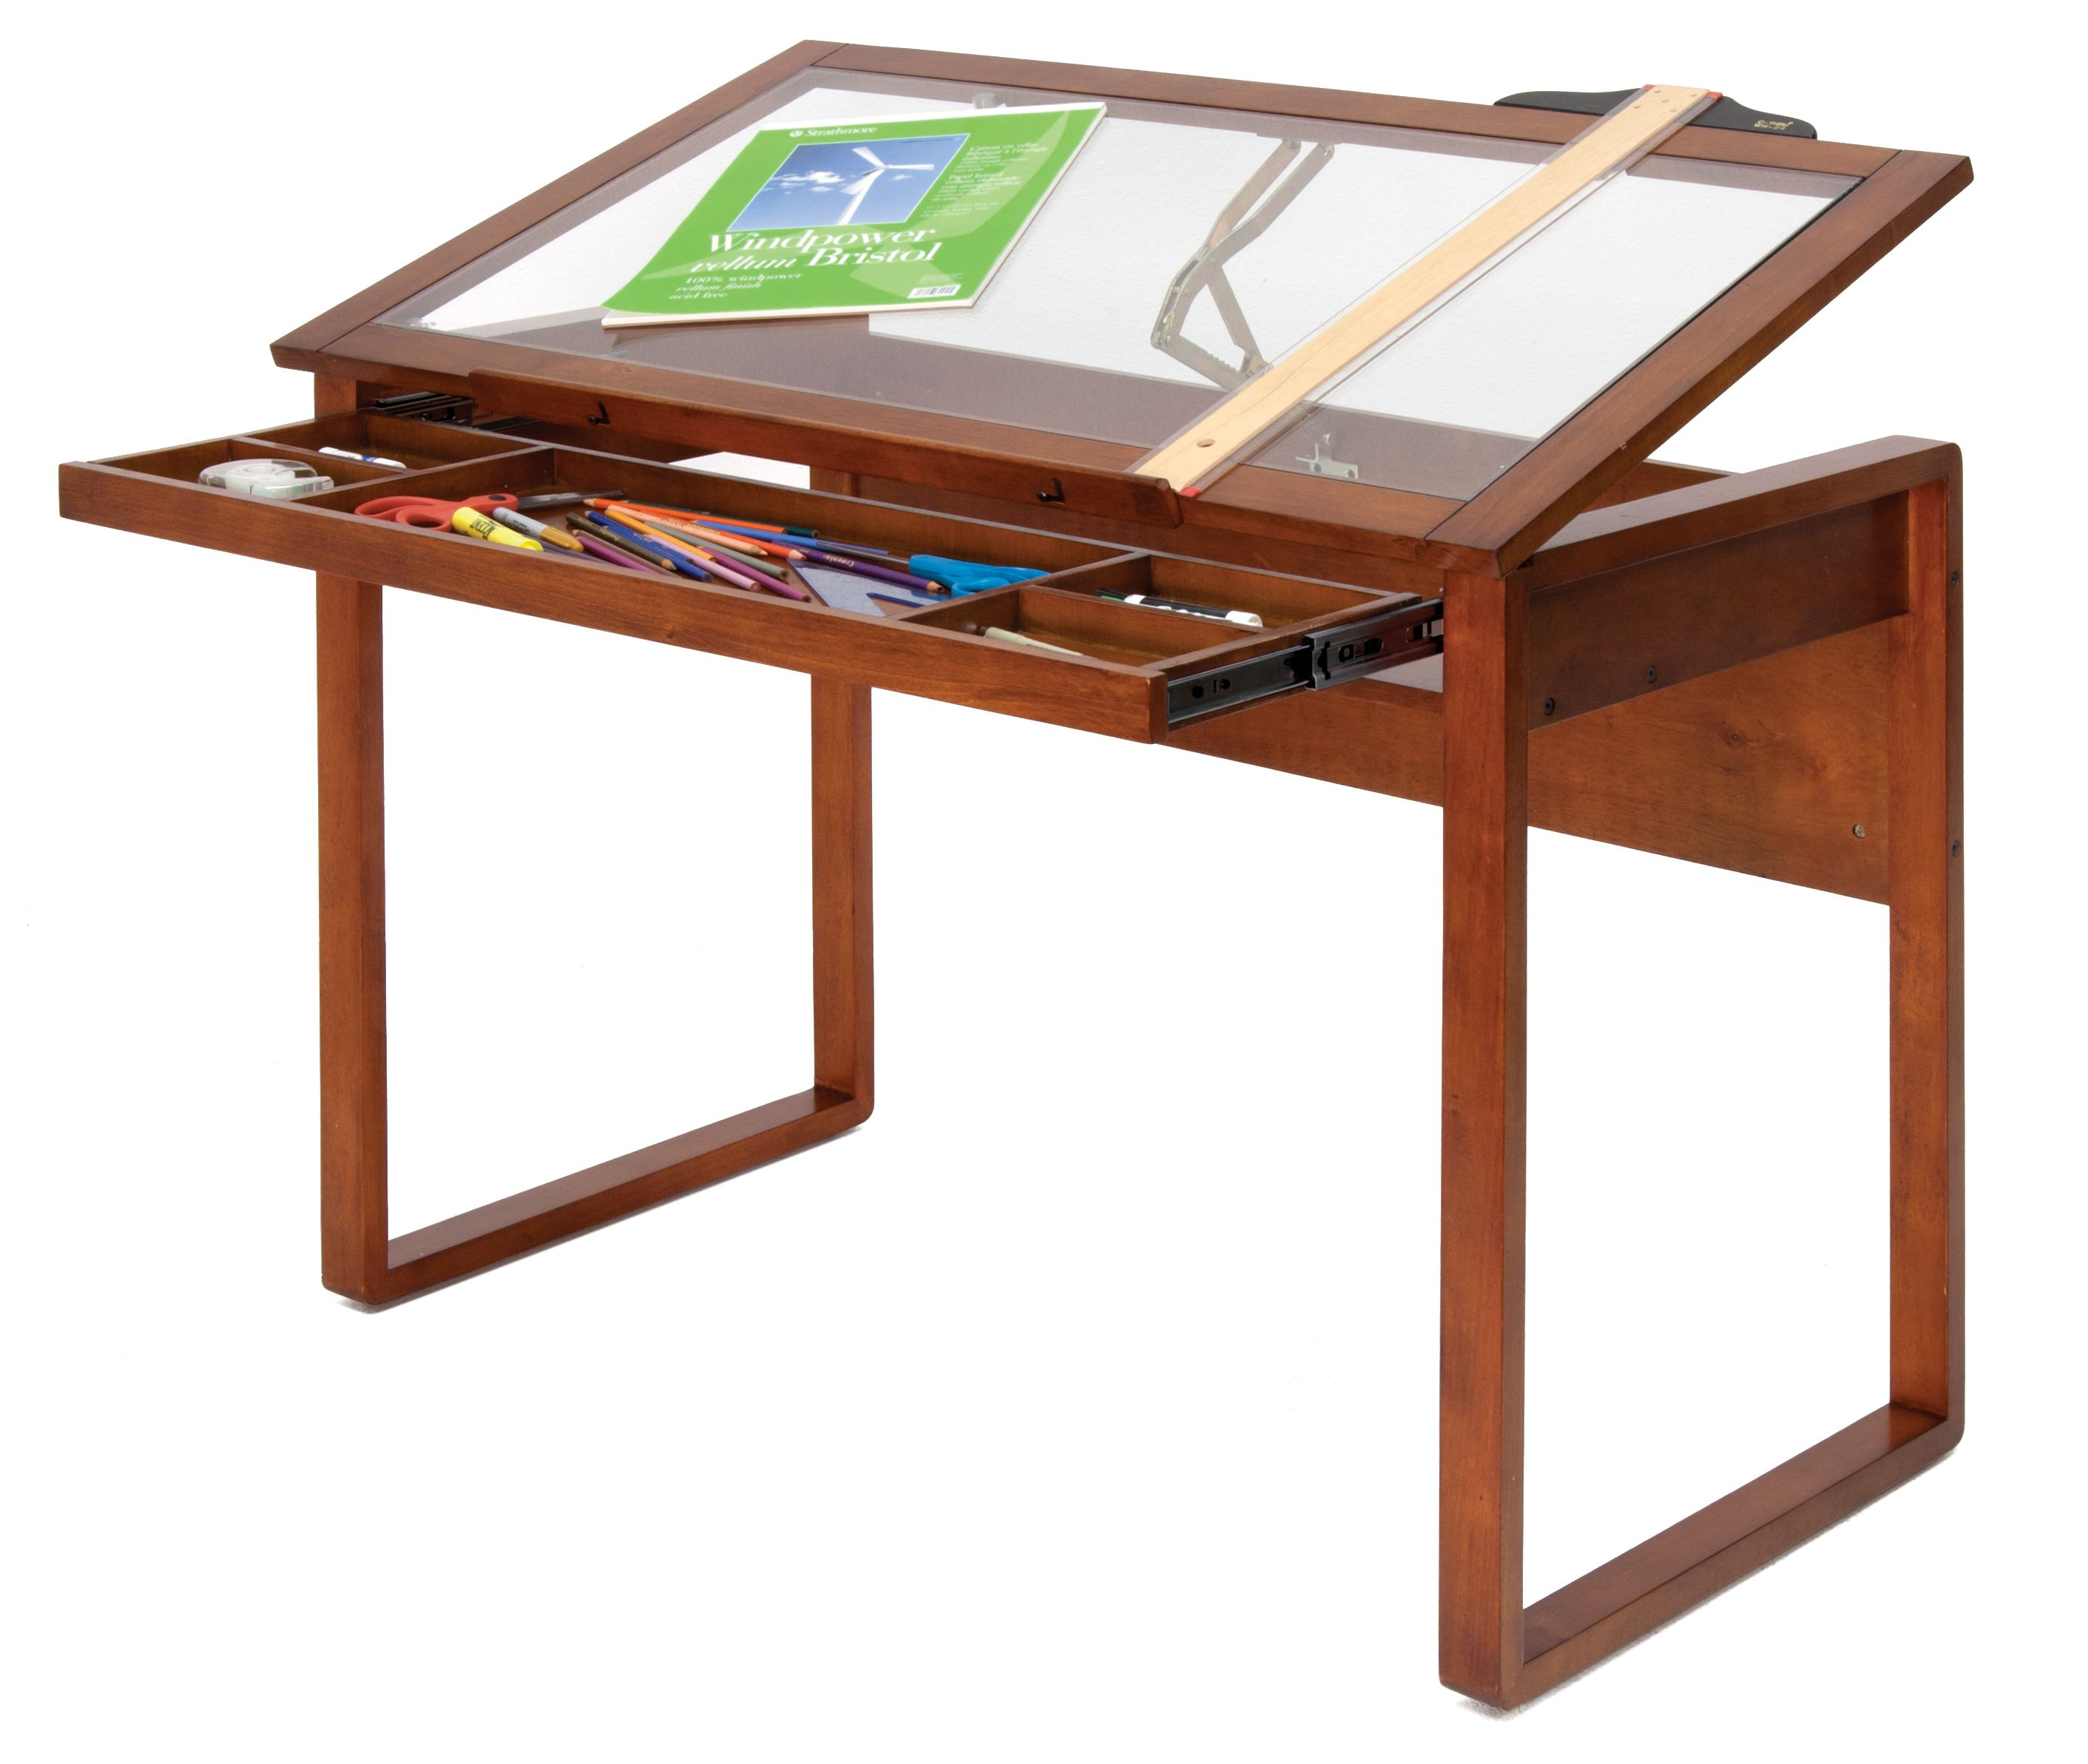 Heavenly Brown Polished Wooden Square Craft Table With Pull Out Glass Top  Added Single Shelf Drawers